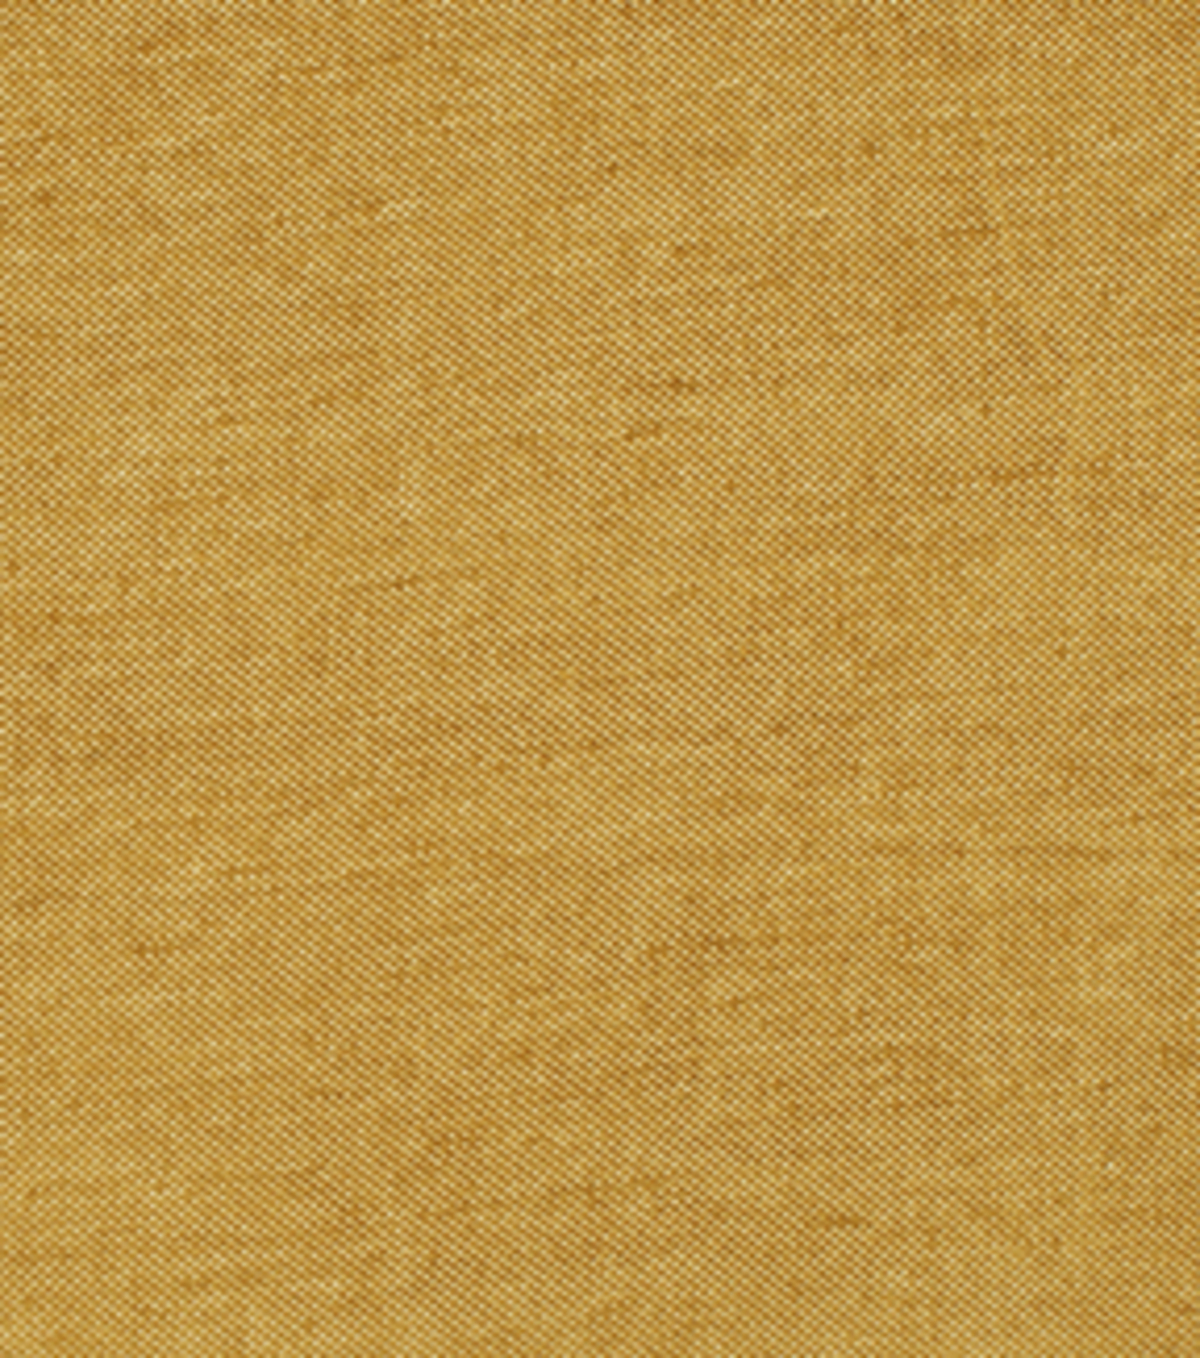 Home Decor 8\u0022x8\u0022 Fabric Swatch-Signature Series Claudel Honeycomb